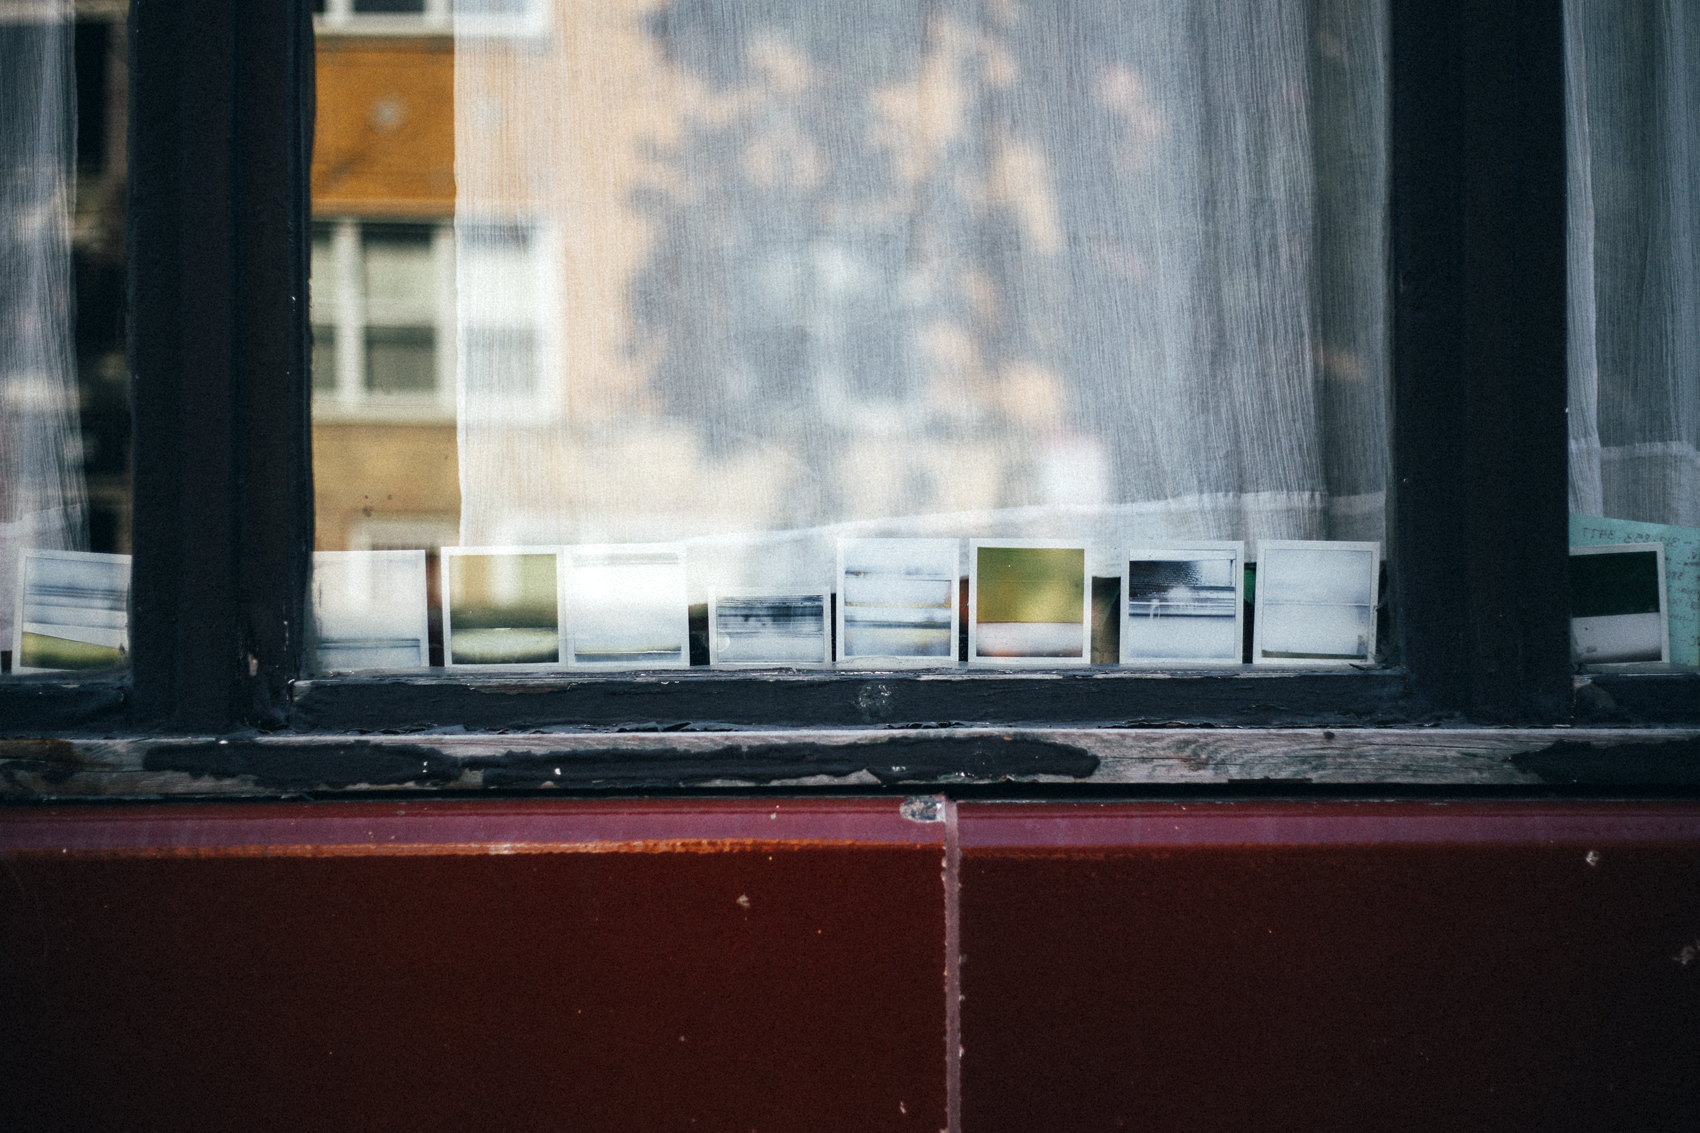 Polaroids. Chicago, IL 2015